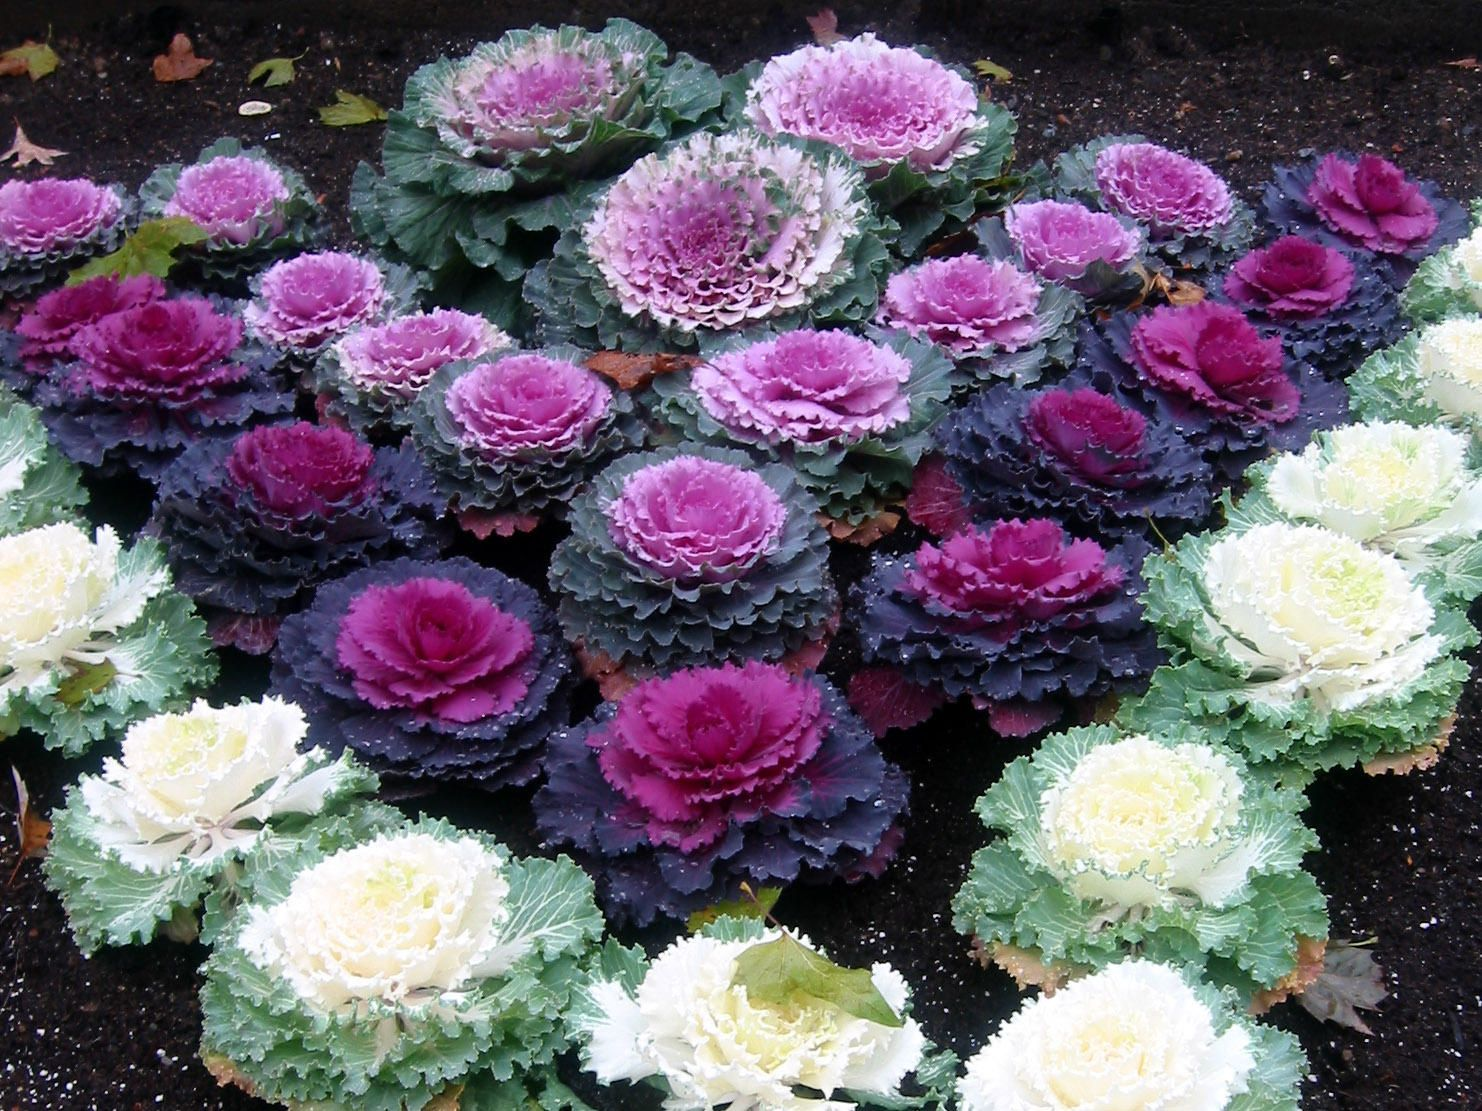 Flowering cabbage plant ornamental cabbage nyu athletic center flowering cabbage plant ornamental cabbage nyu athletic center garden izmirmasajfo